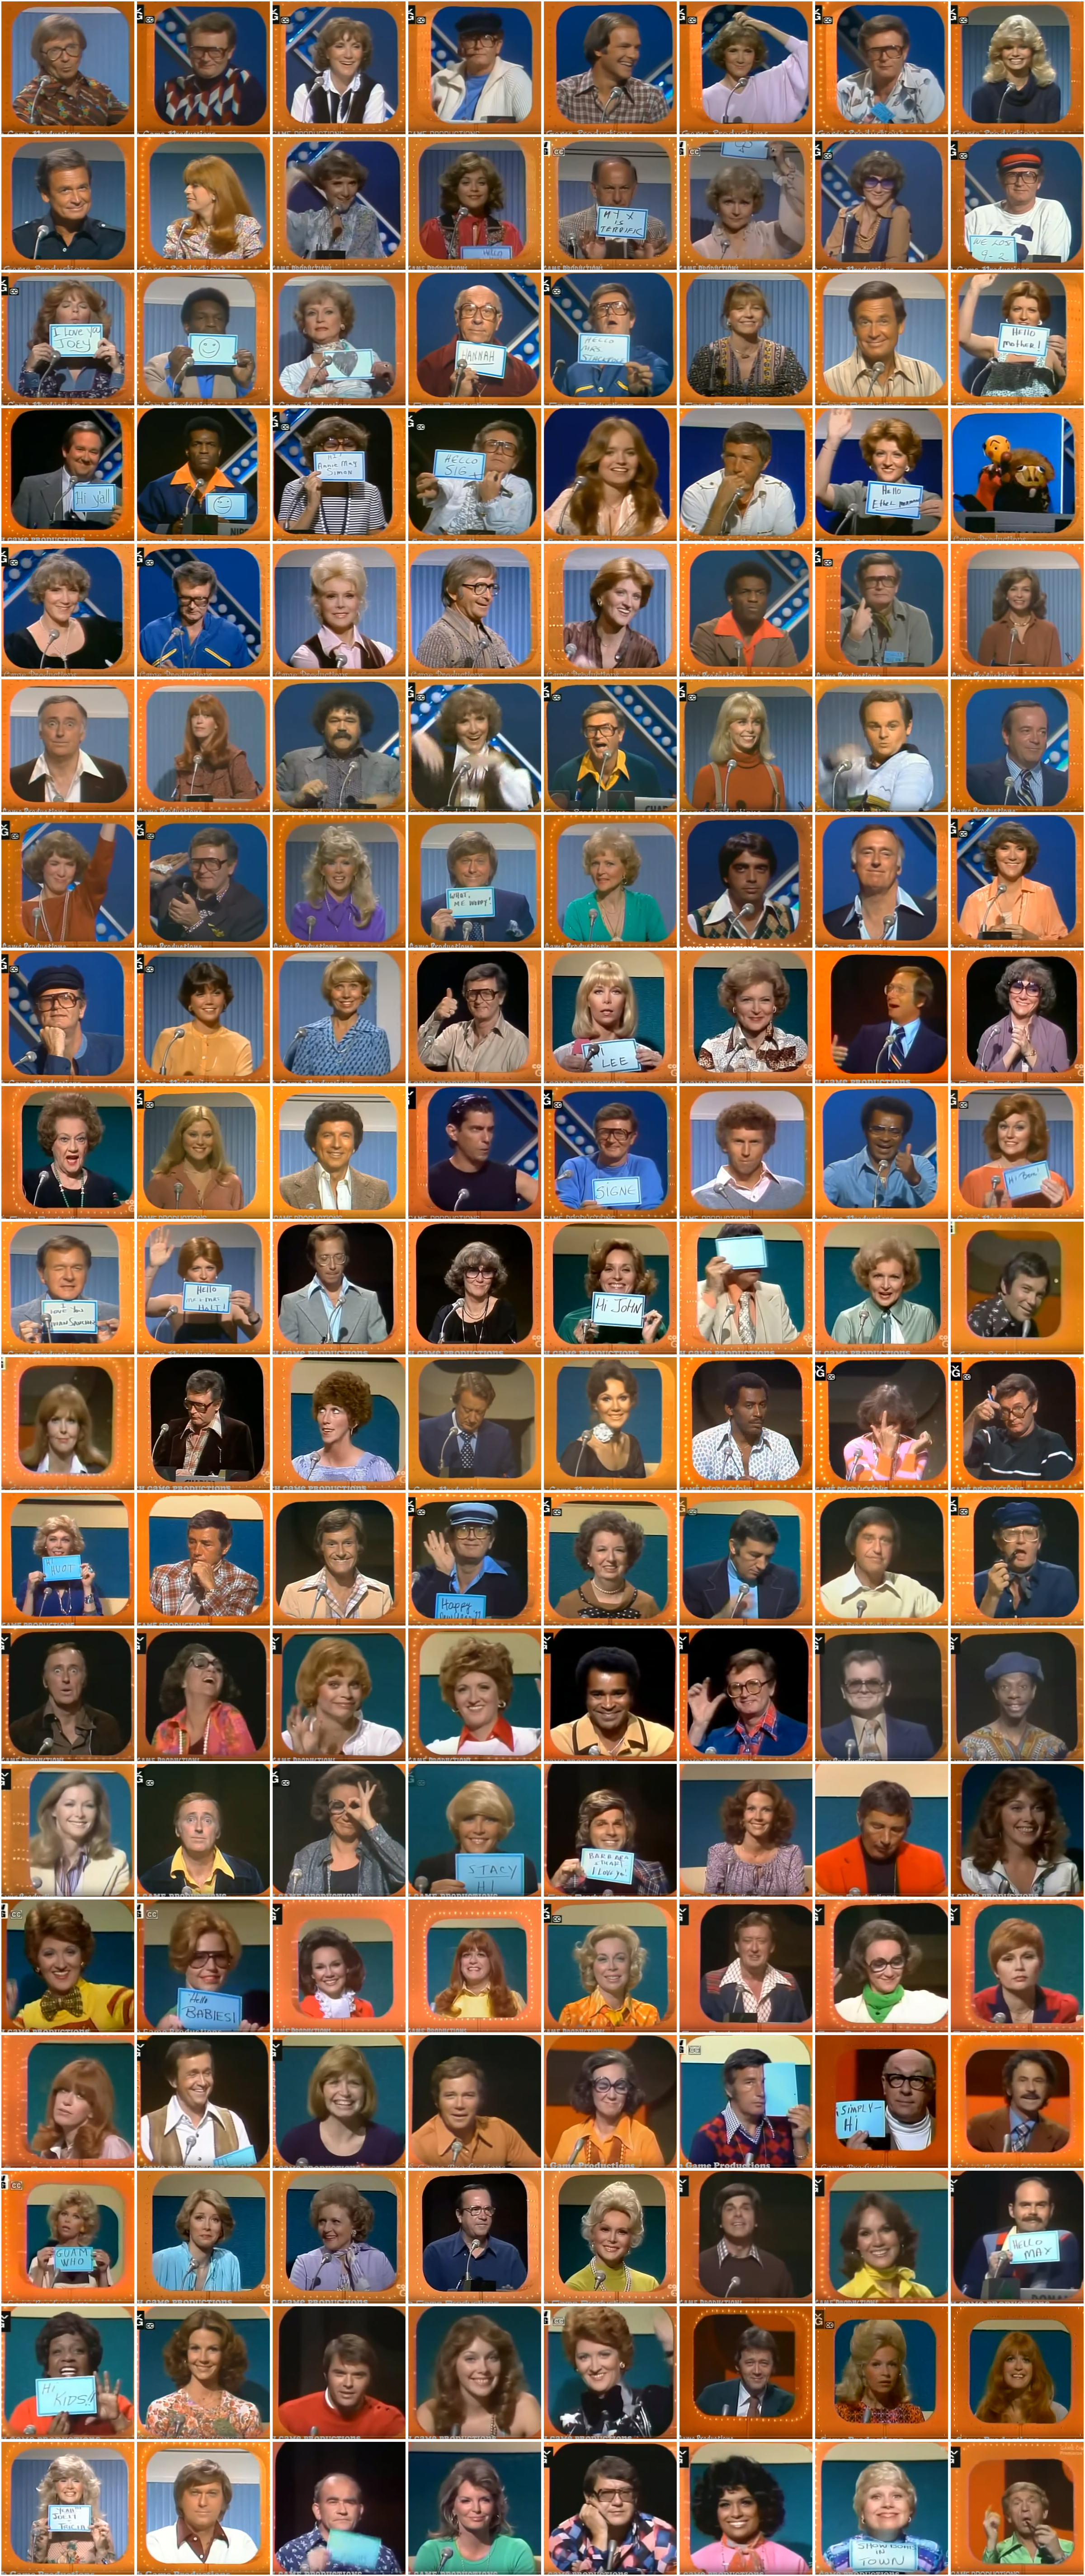 Match Game Guests.jpg